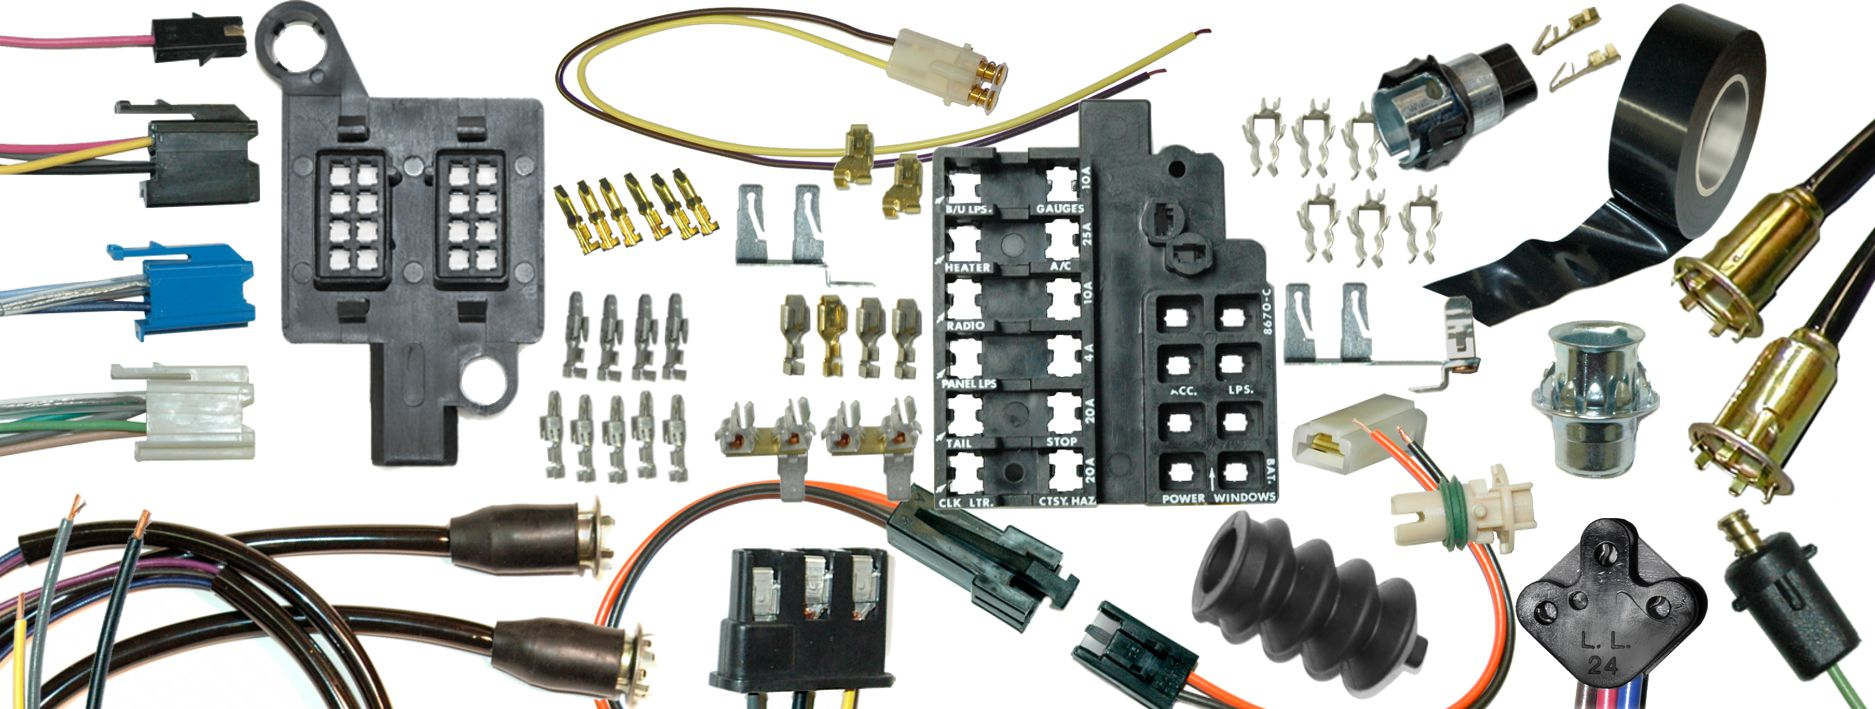 Repair Components Aftermarket Radio Wiring Harness Color Wires For Harnesses